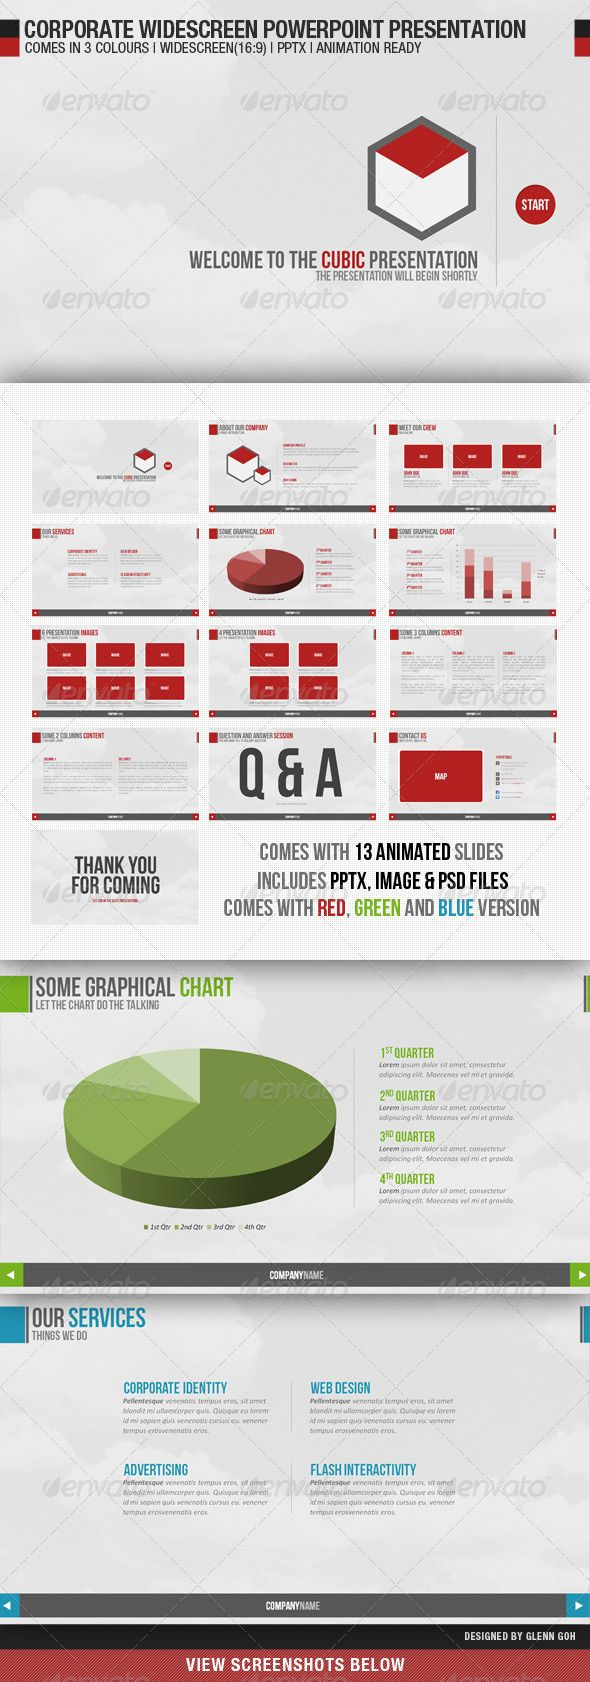 686 best presentation ideas images on pinterest | business, Presentation templates